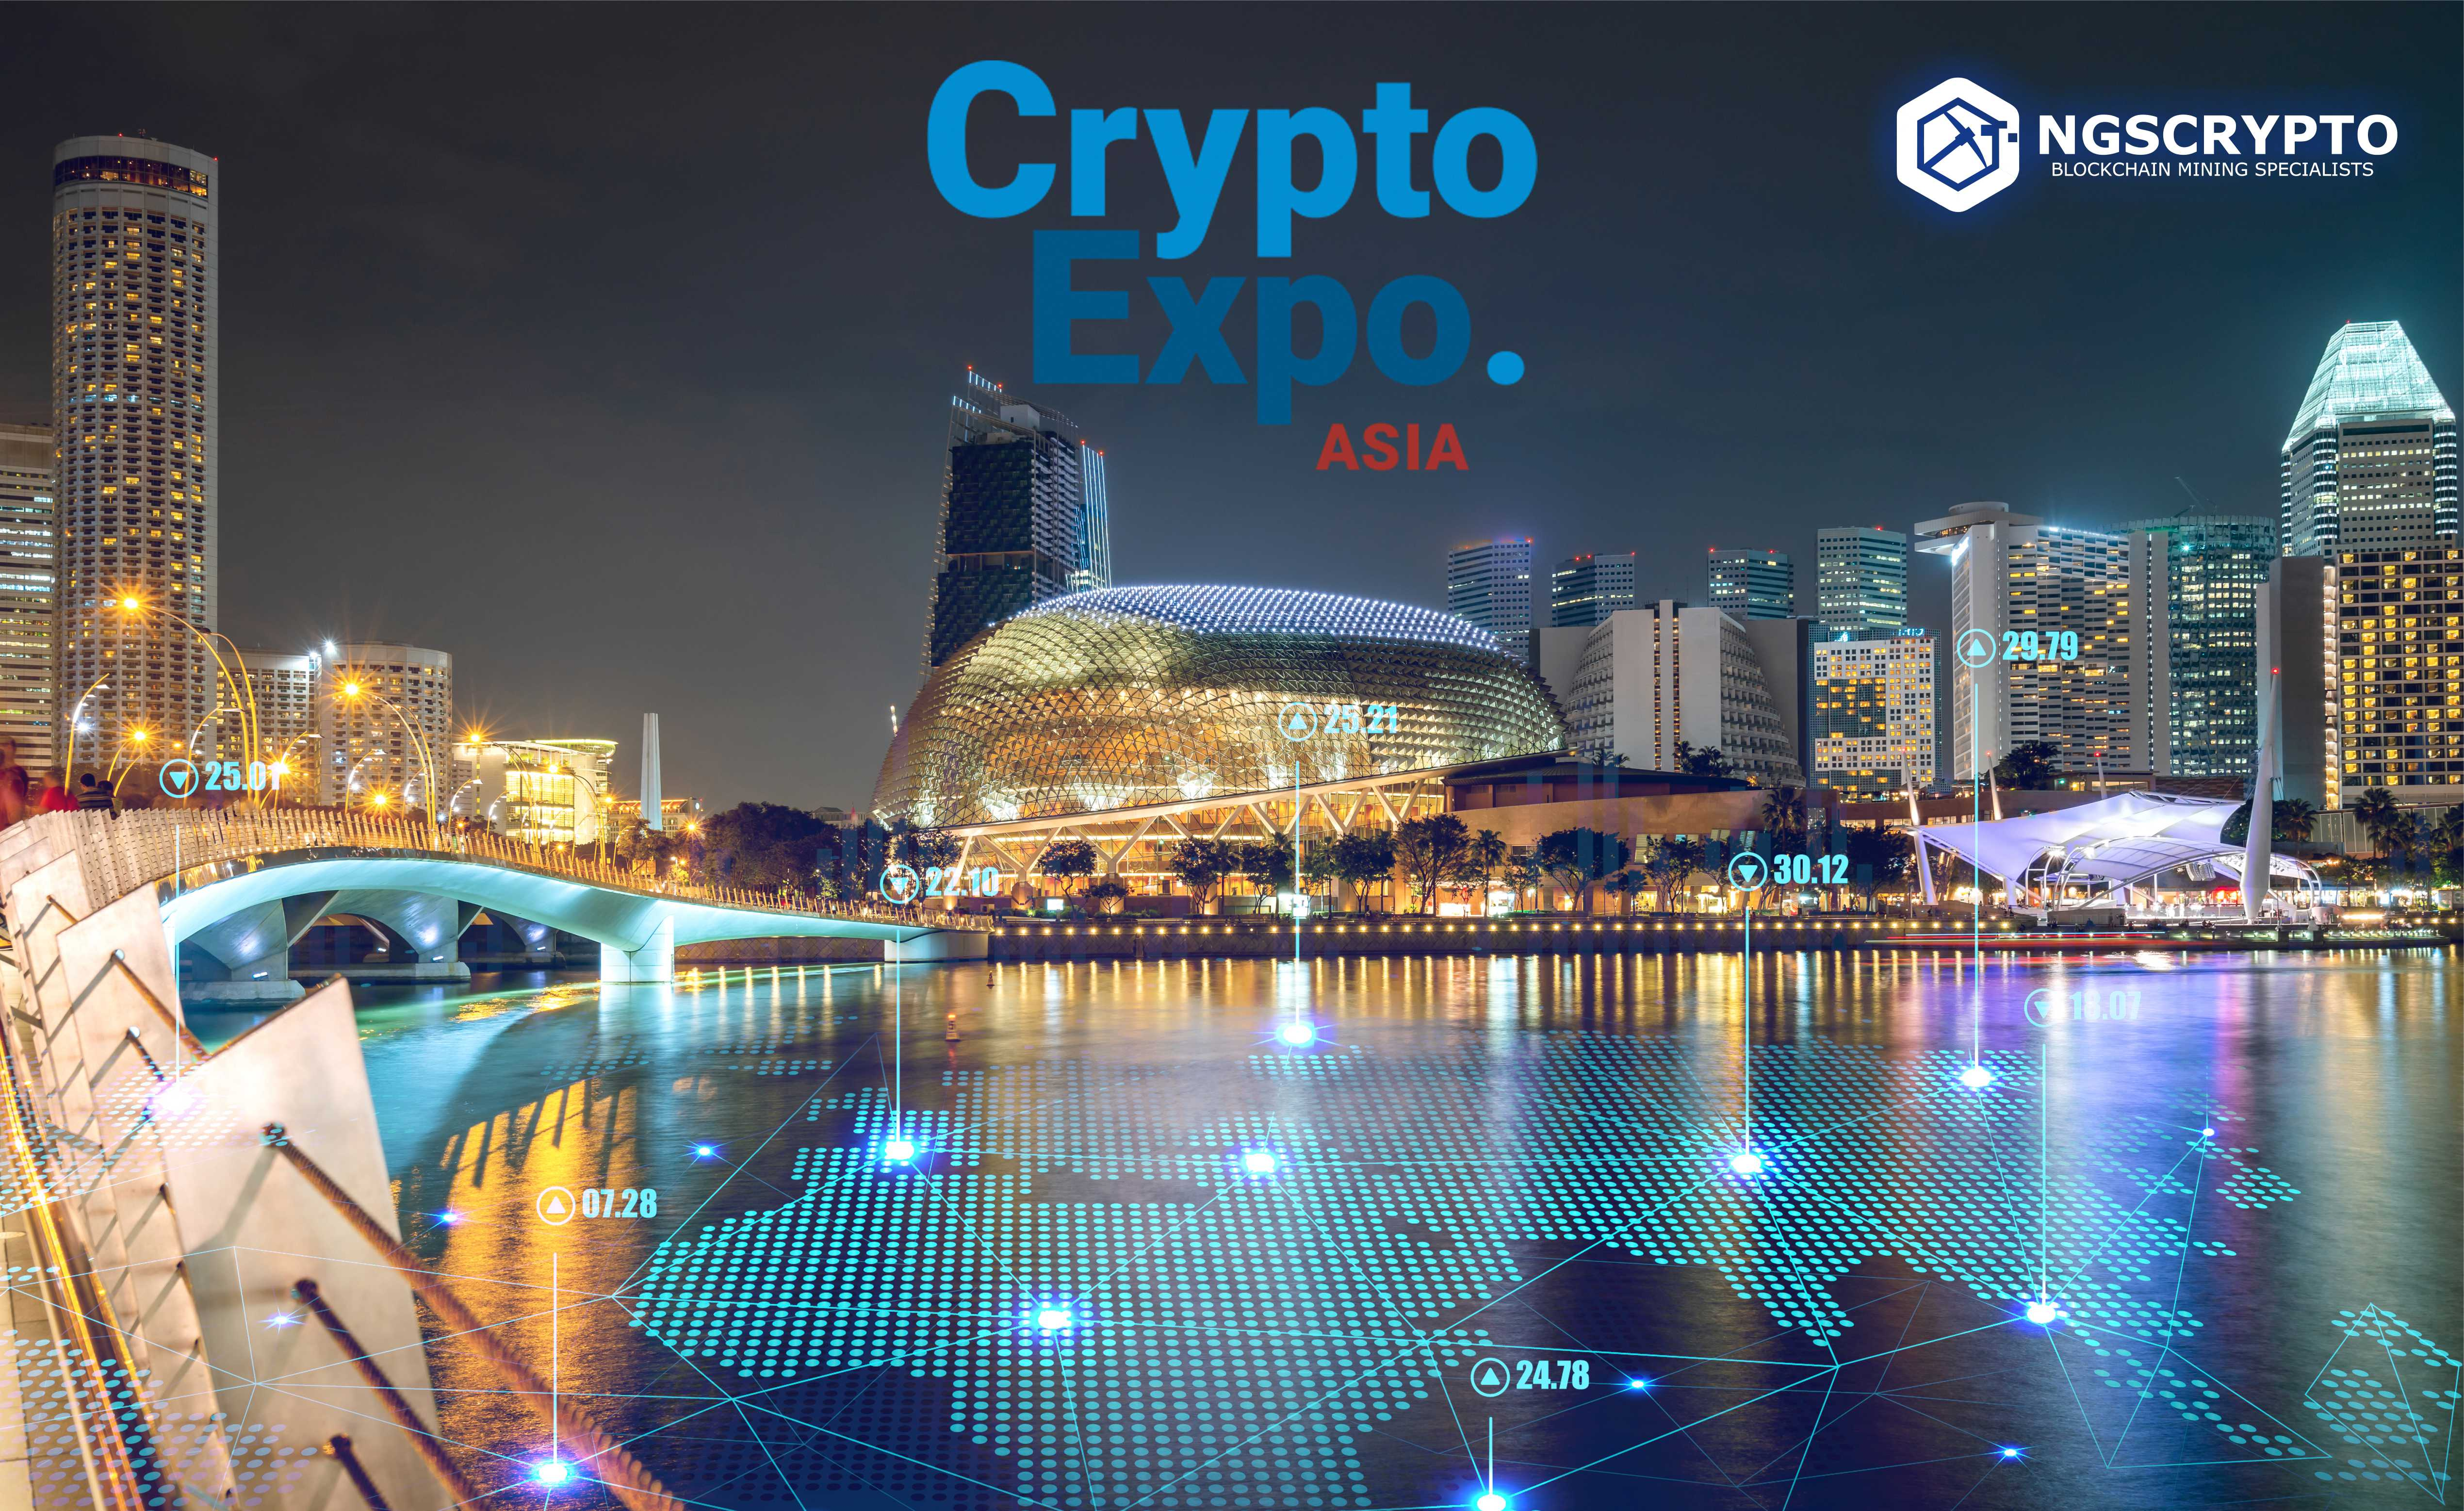 NGS CRYPTO TO ATTEND INTERNATIONAL BLOCKCHAIN, CRYPTOCURRENCY AND CRYPTOEXCHANGE CONFERENCE IN SINGAPORE